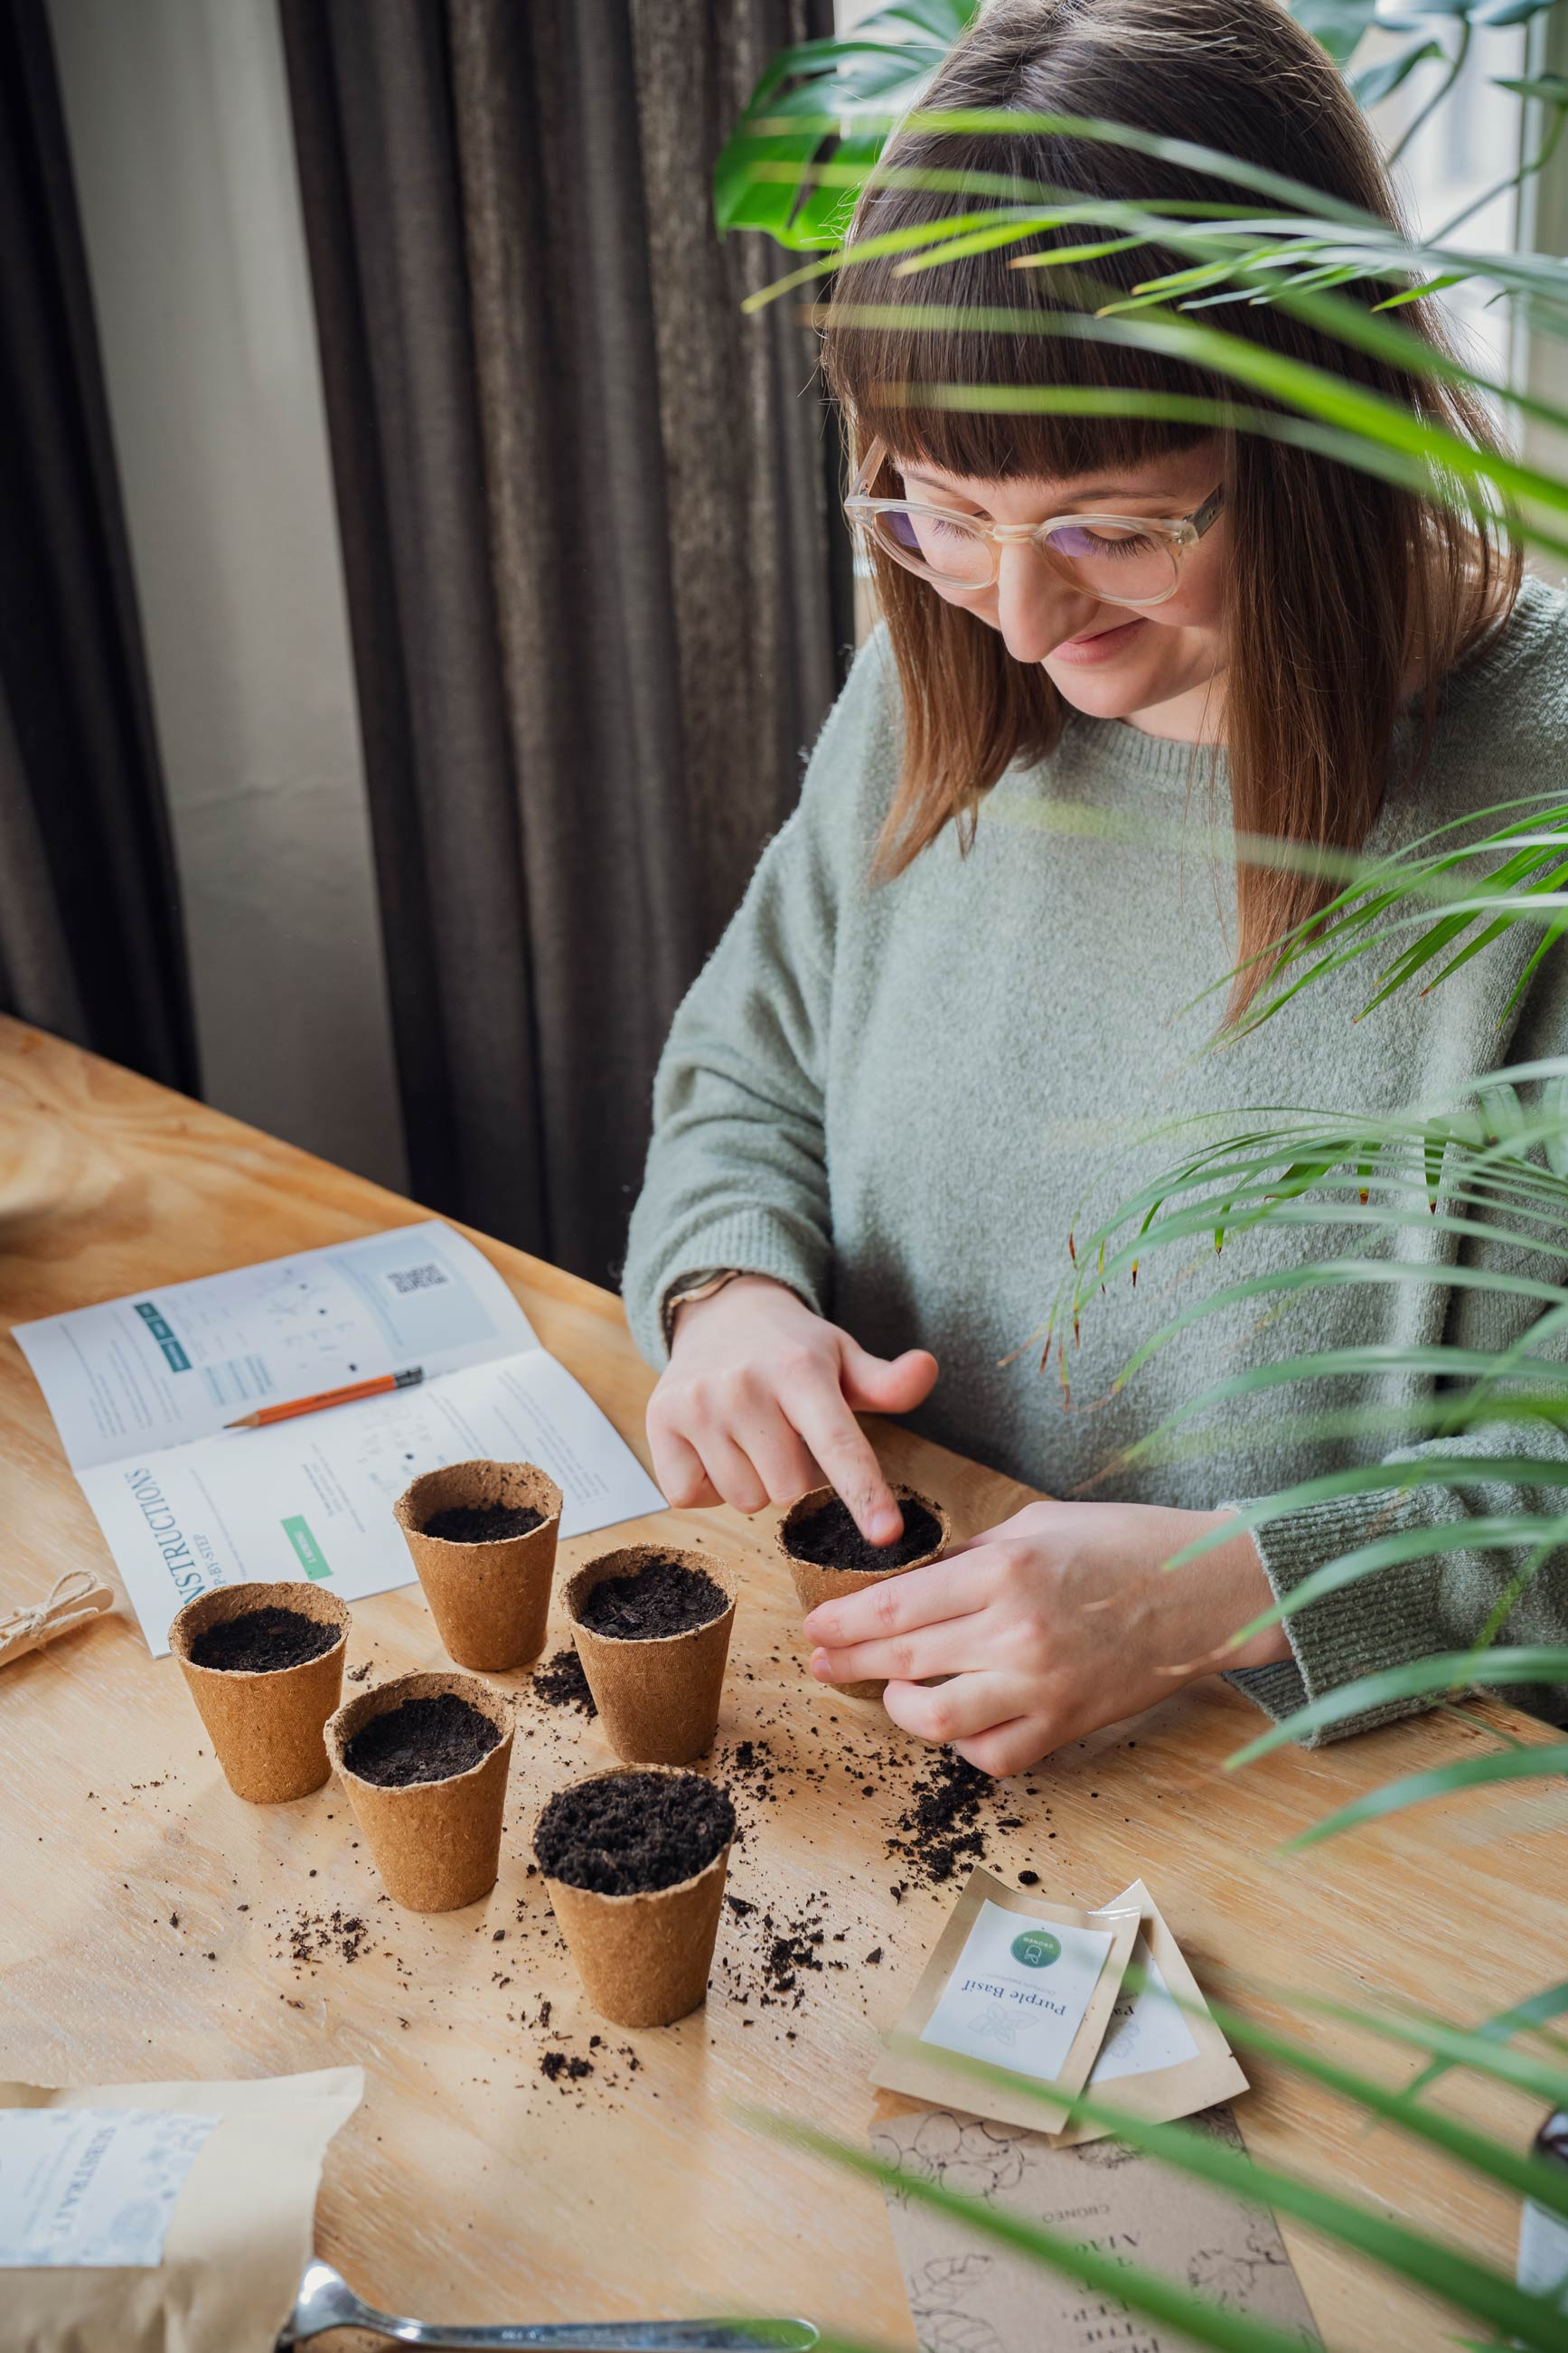 Growing food at home with Lena Müller from Grüneo